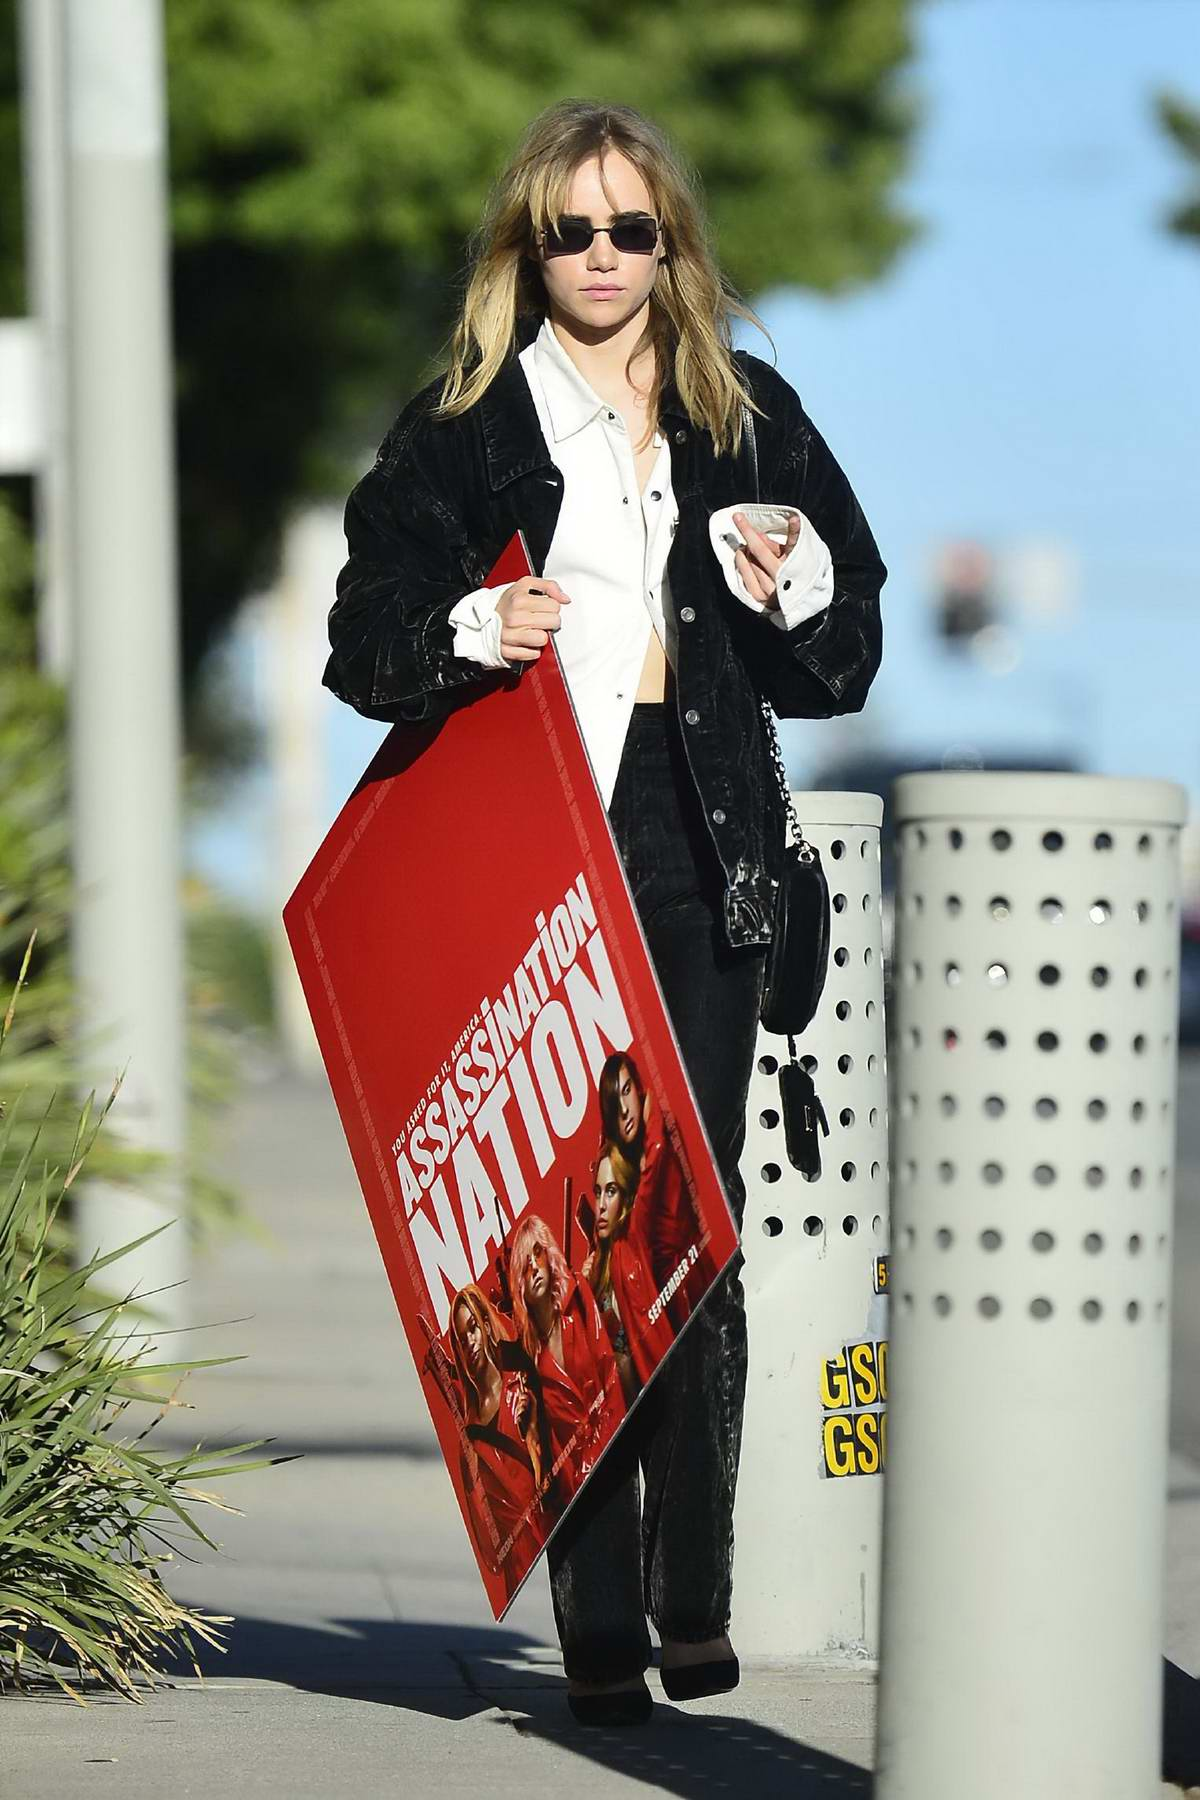 Suki Waterhouse spotted carrying around an 'Assassination Nation' Cutout in Los Angeles